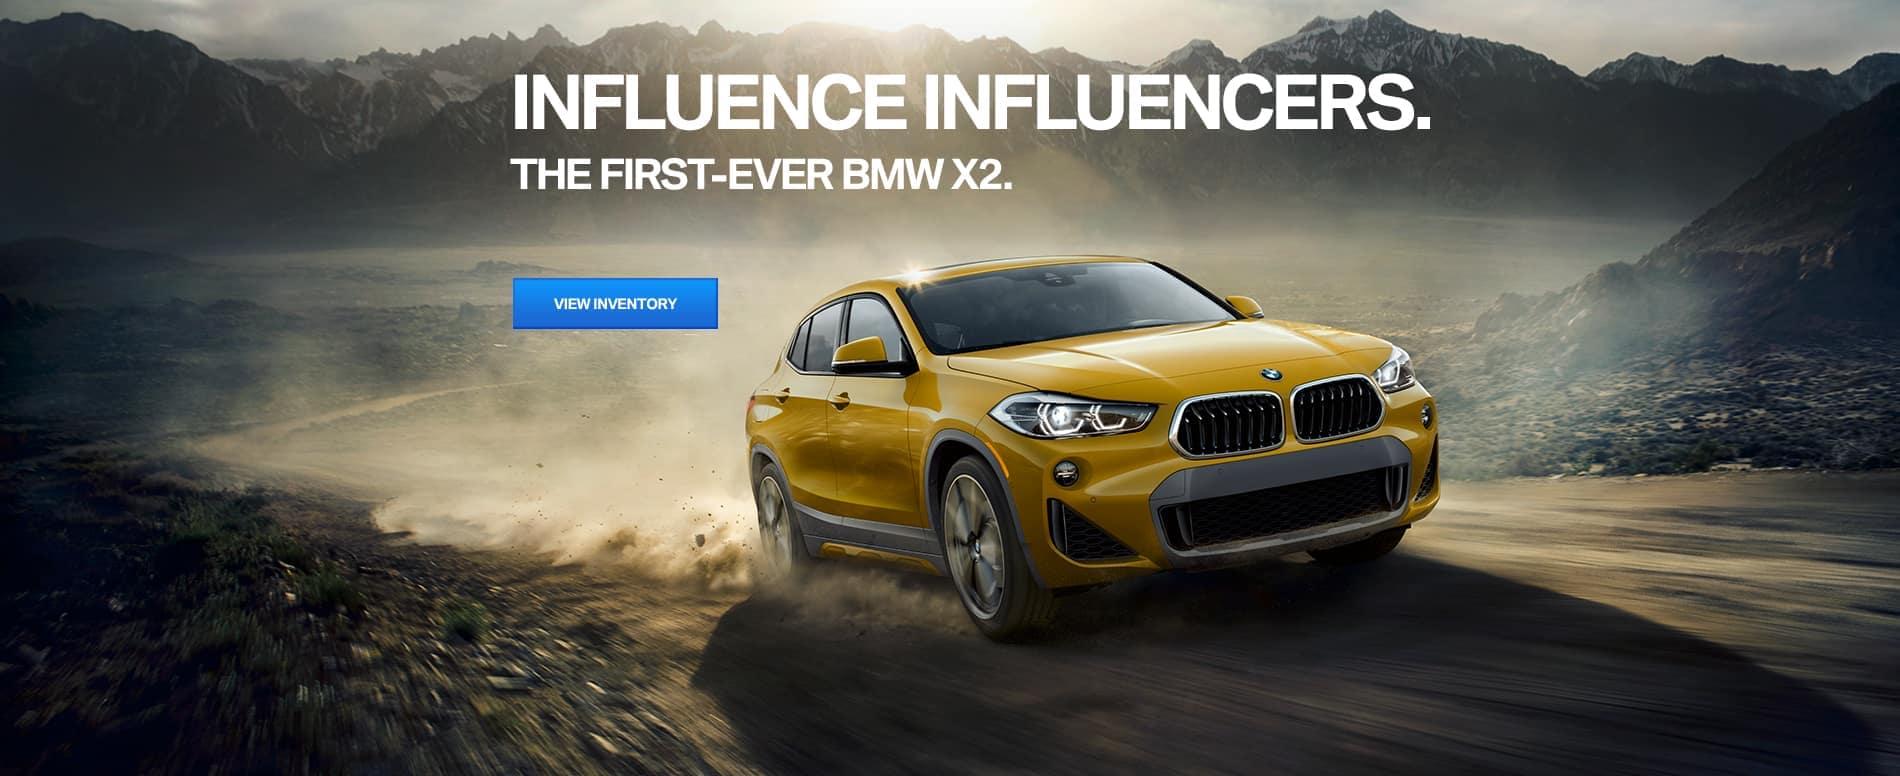 2018-BMW-X2-Influence-Influencers (1)